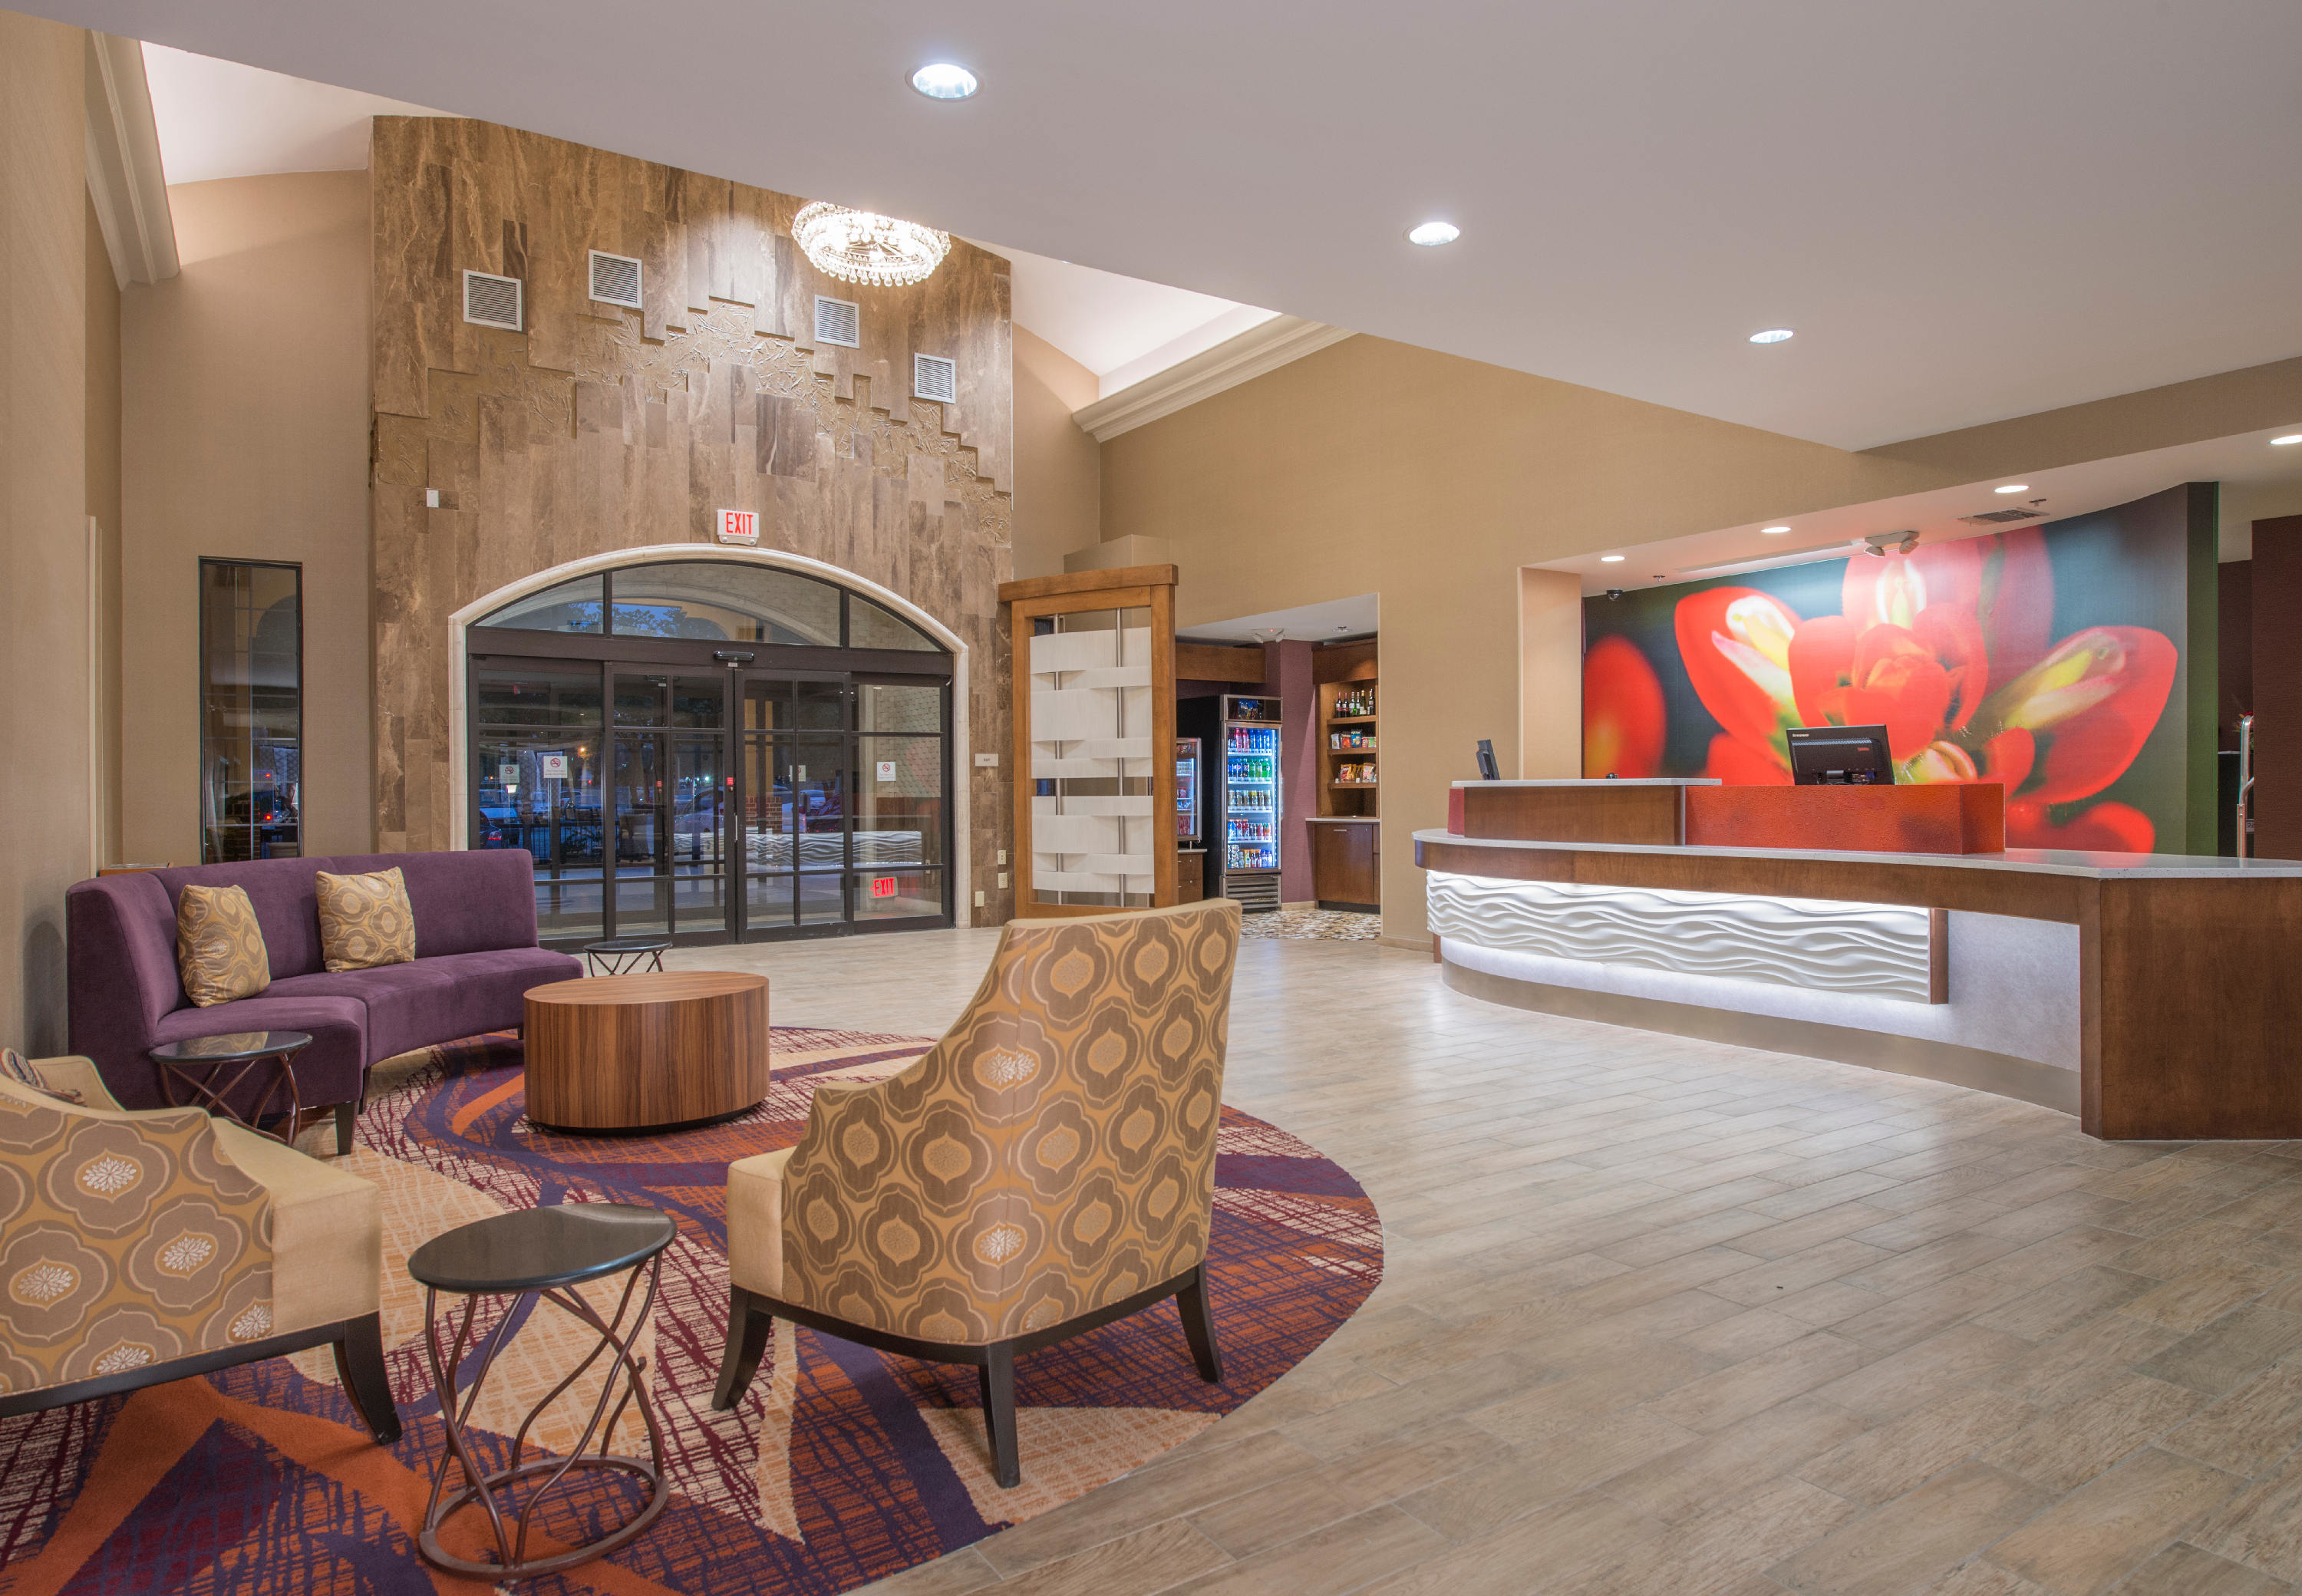 SpringHill Suites by Marriott San Antonio Downtown/Riverwalk Area